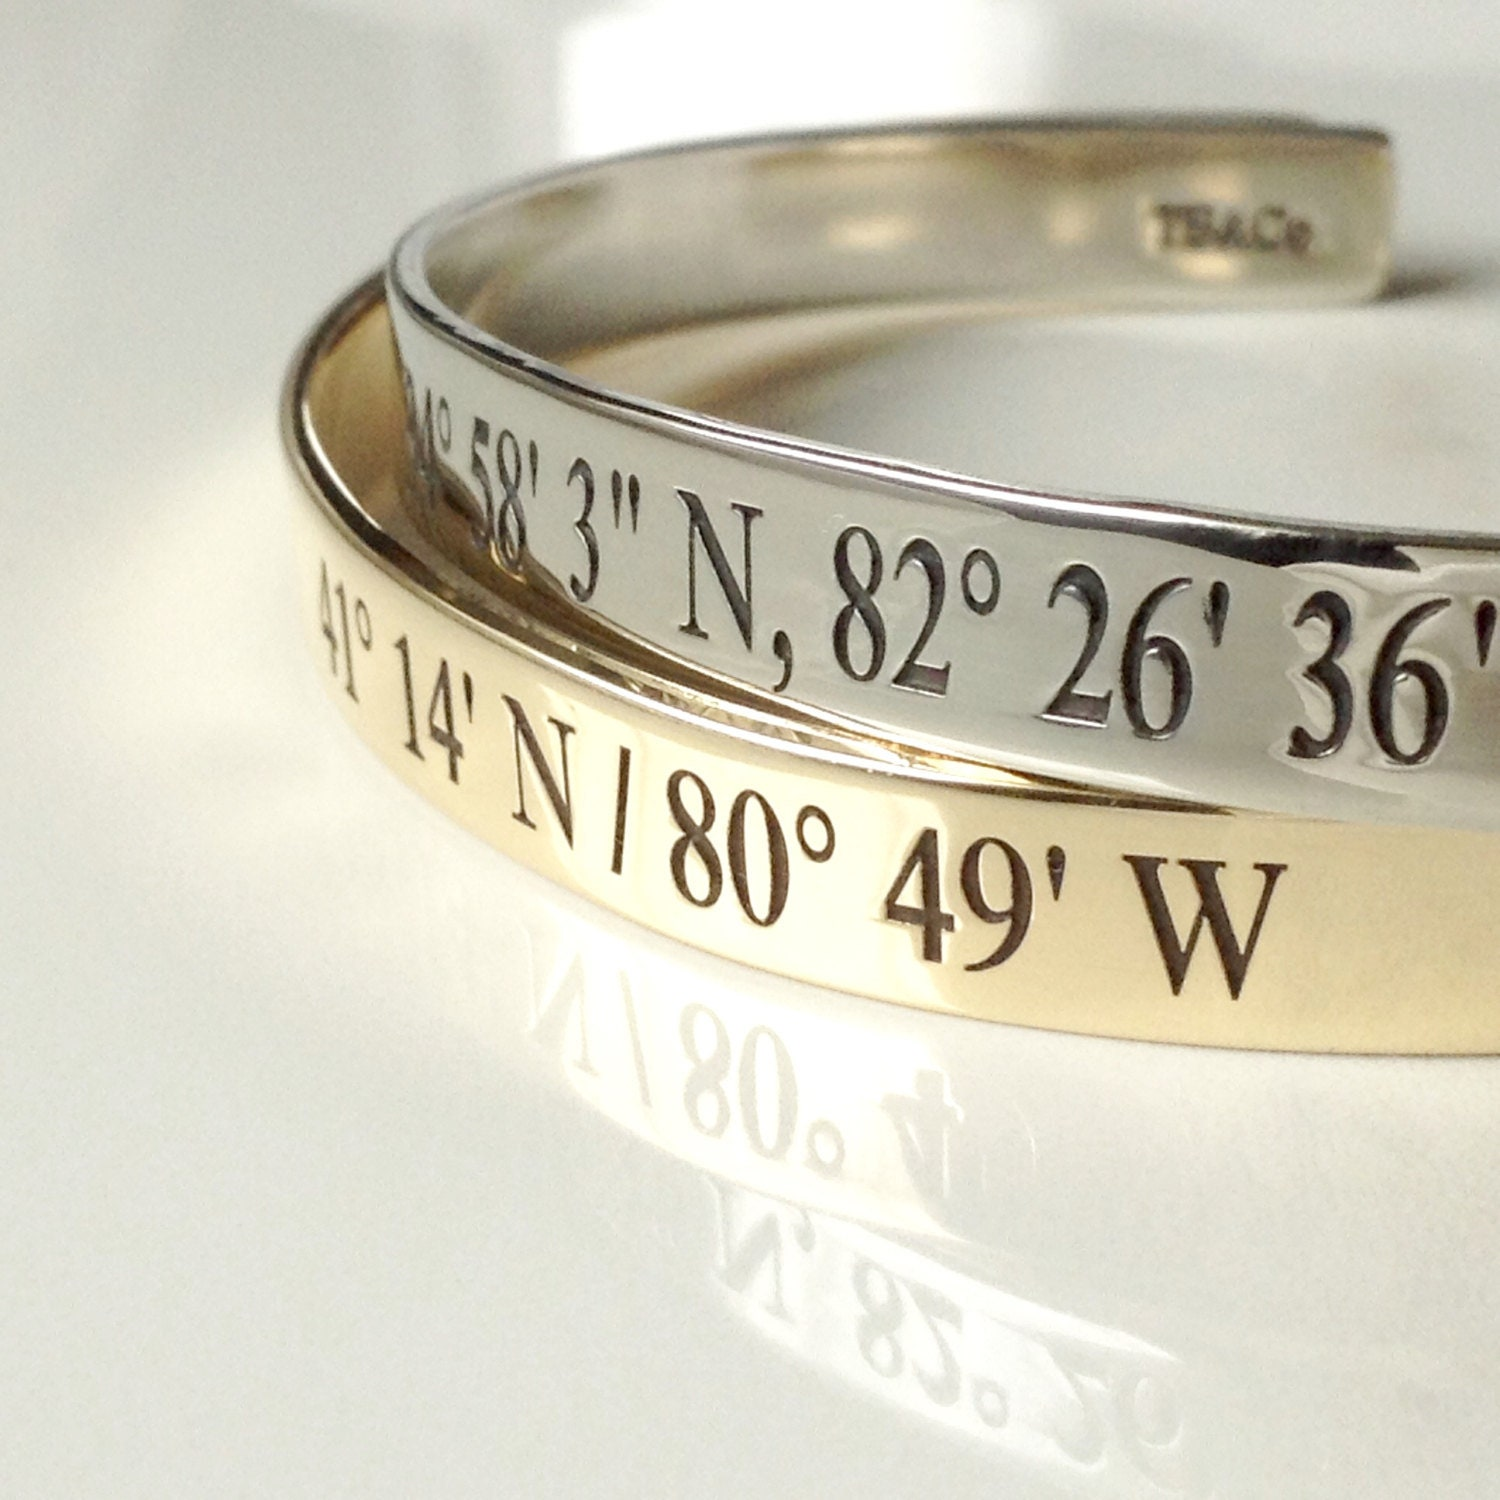 personalized stamped bracelet product family latitude new long lat coordinate jewelry hand forever cuff is longitude